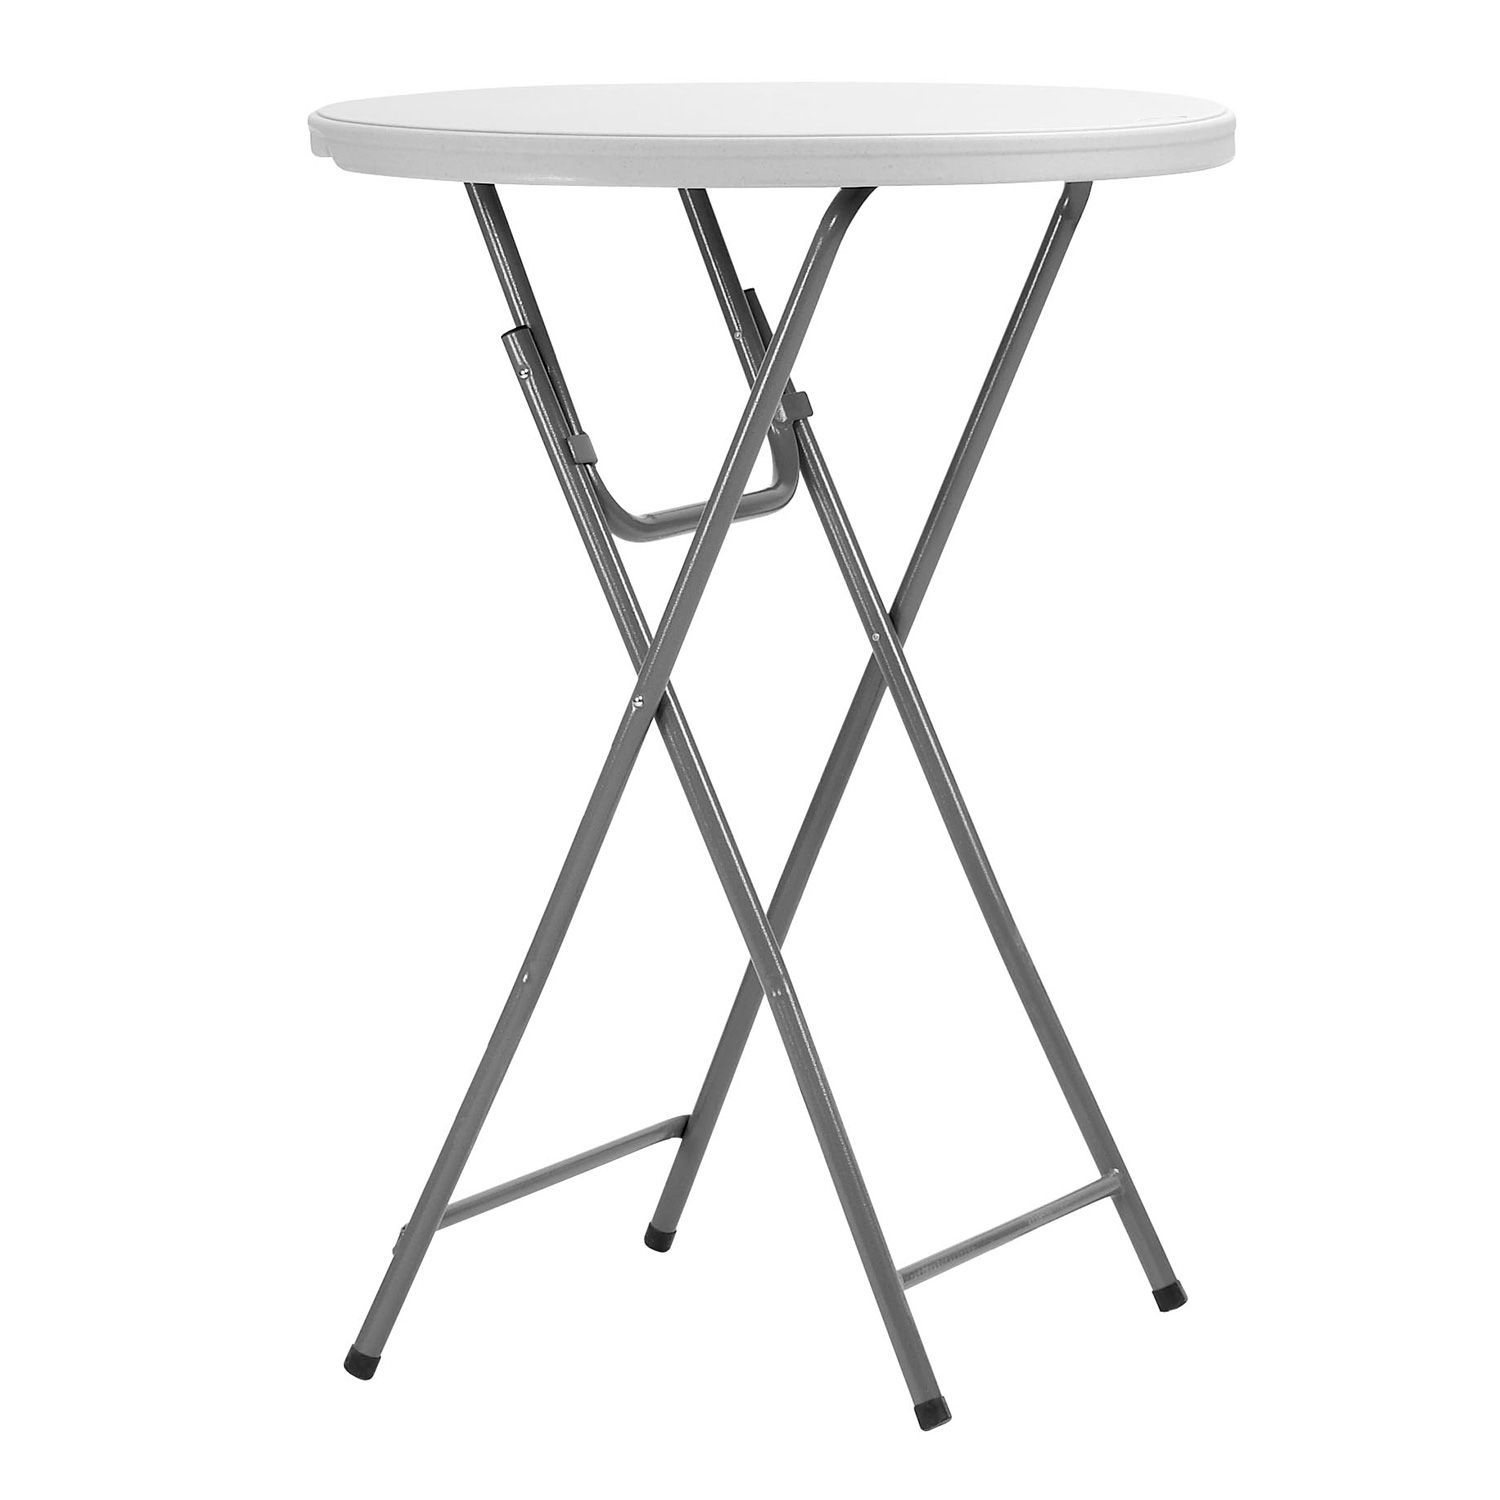 - PSK/Diffuser/home Set Up Table For Btwn The Two Folding Tables